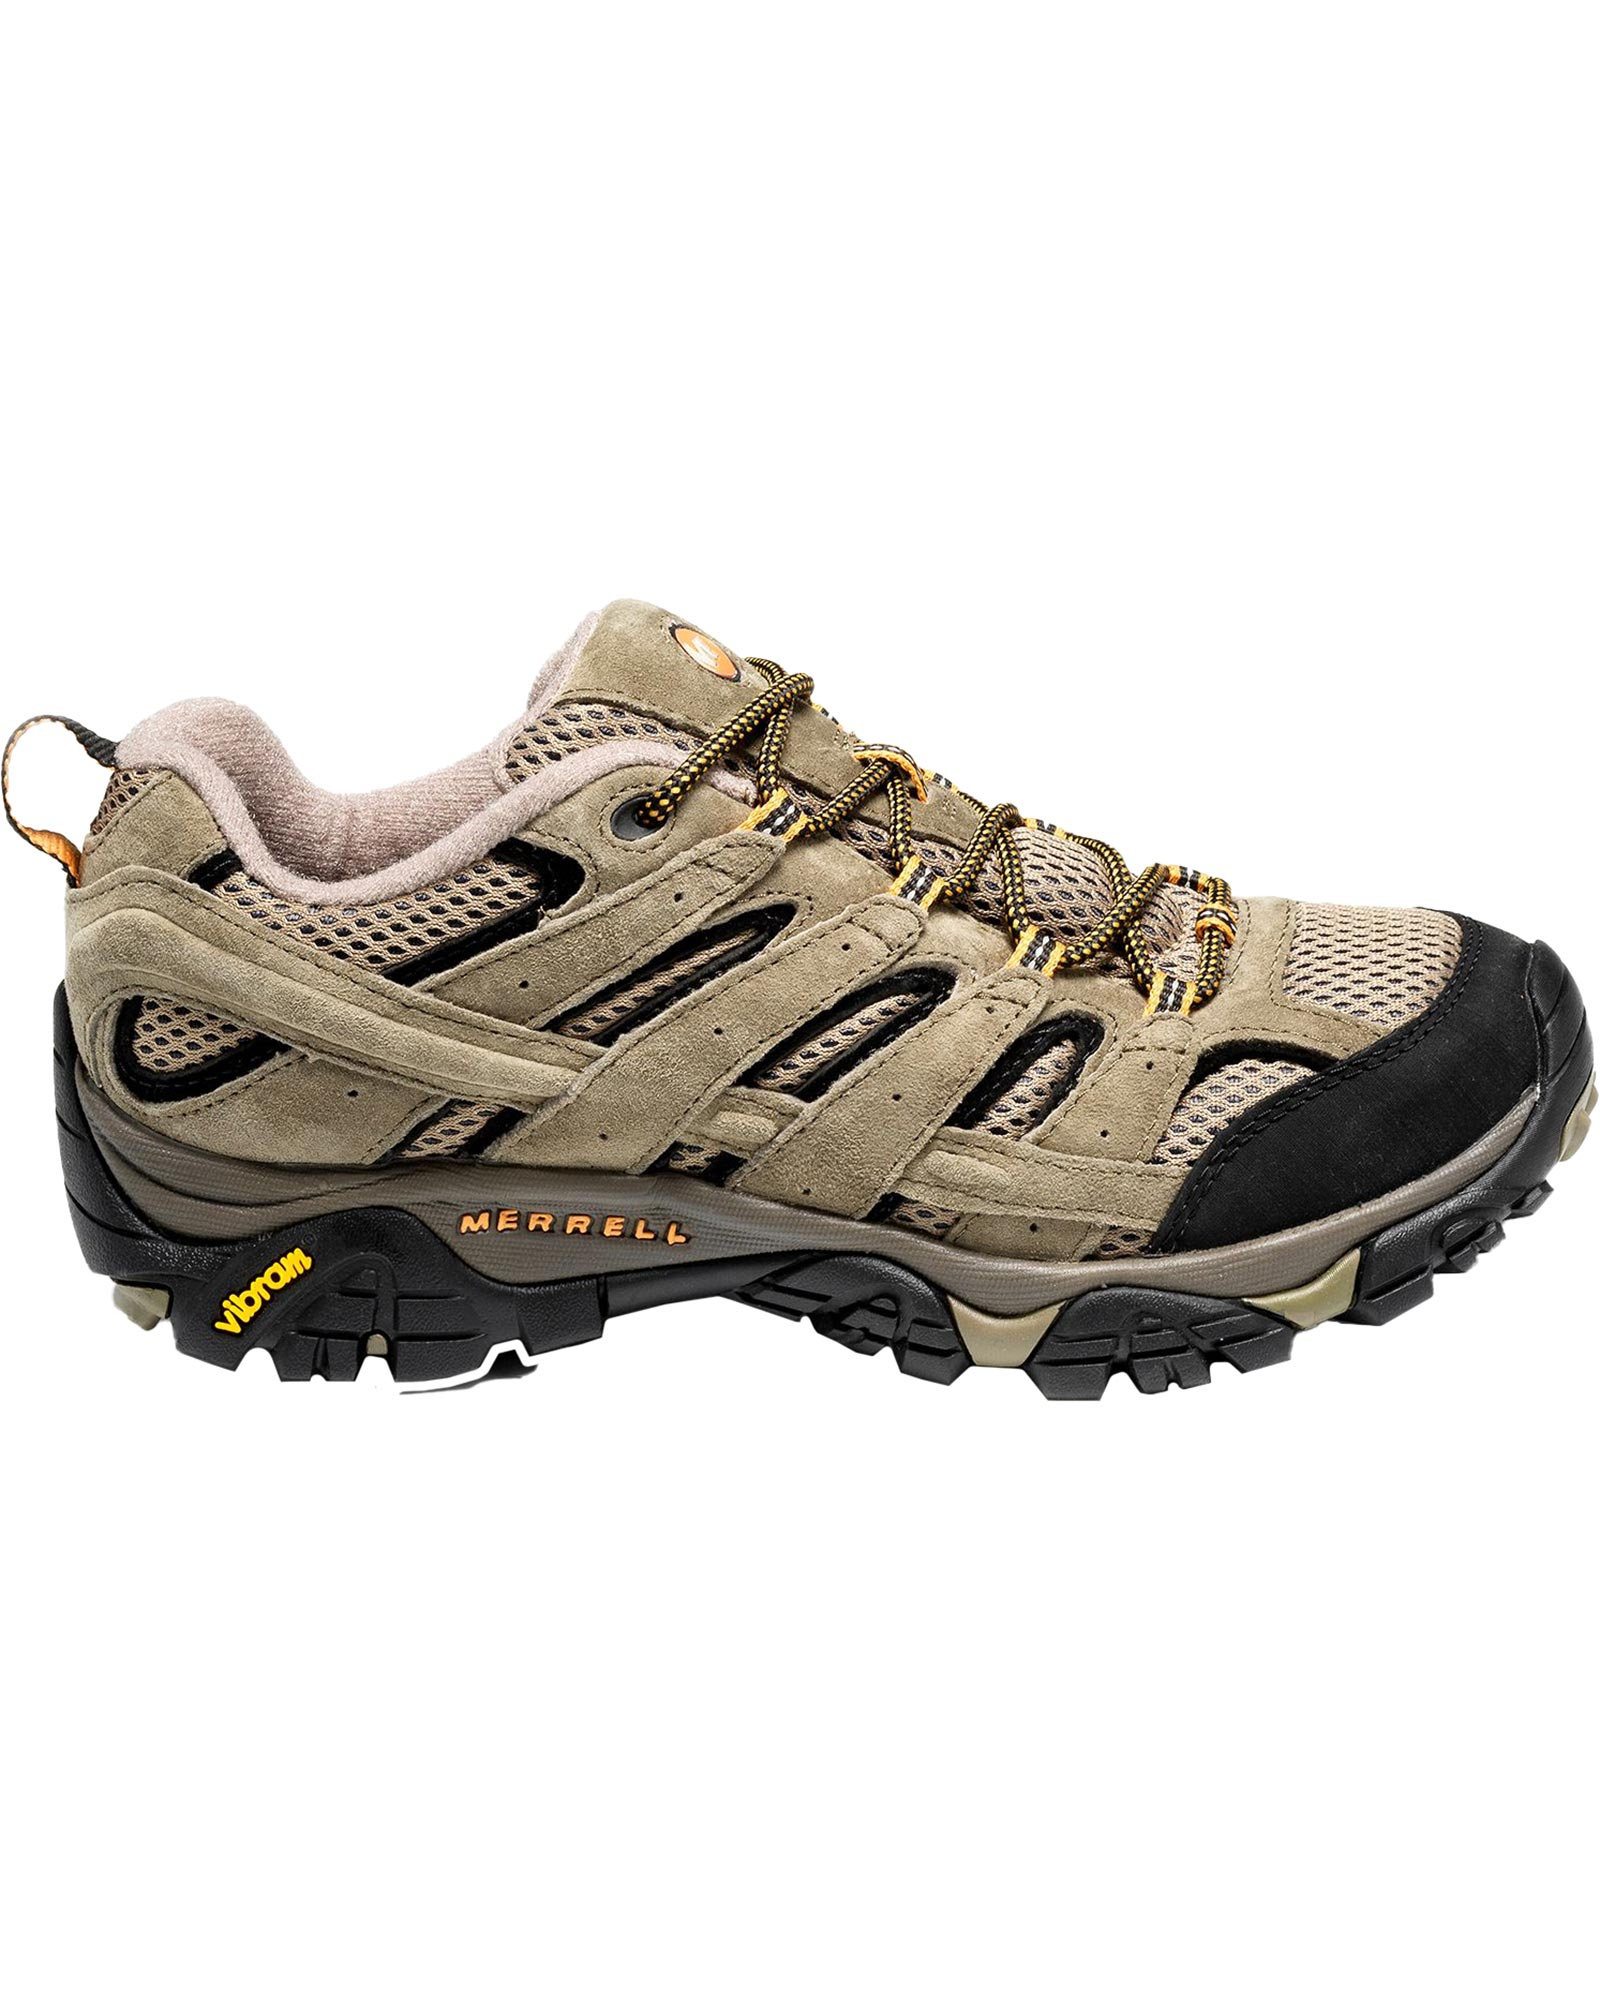 Merrell Moab 2 Ventilator Men's Shoes 0